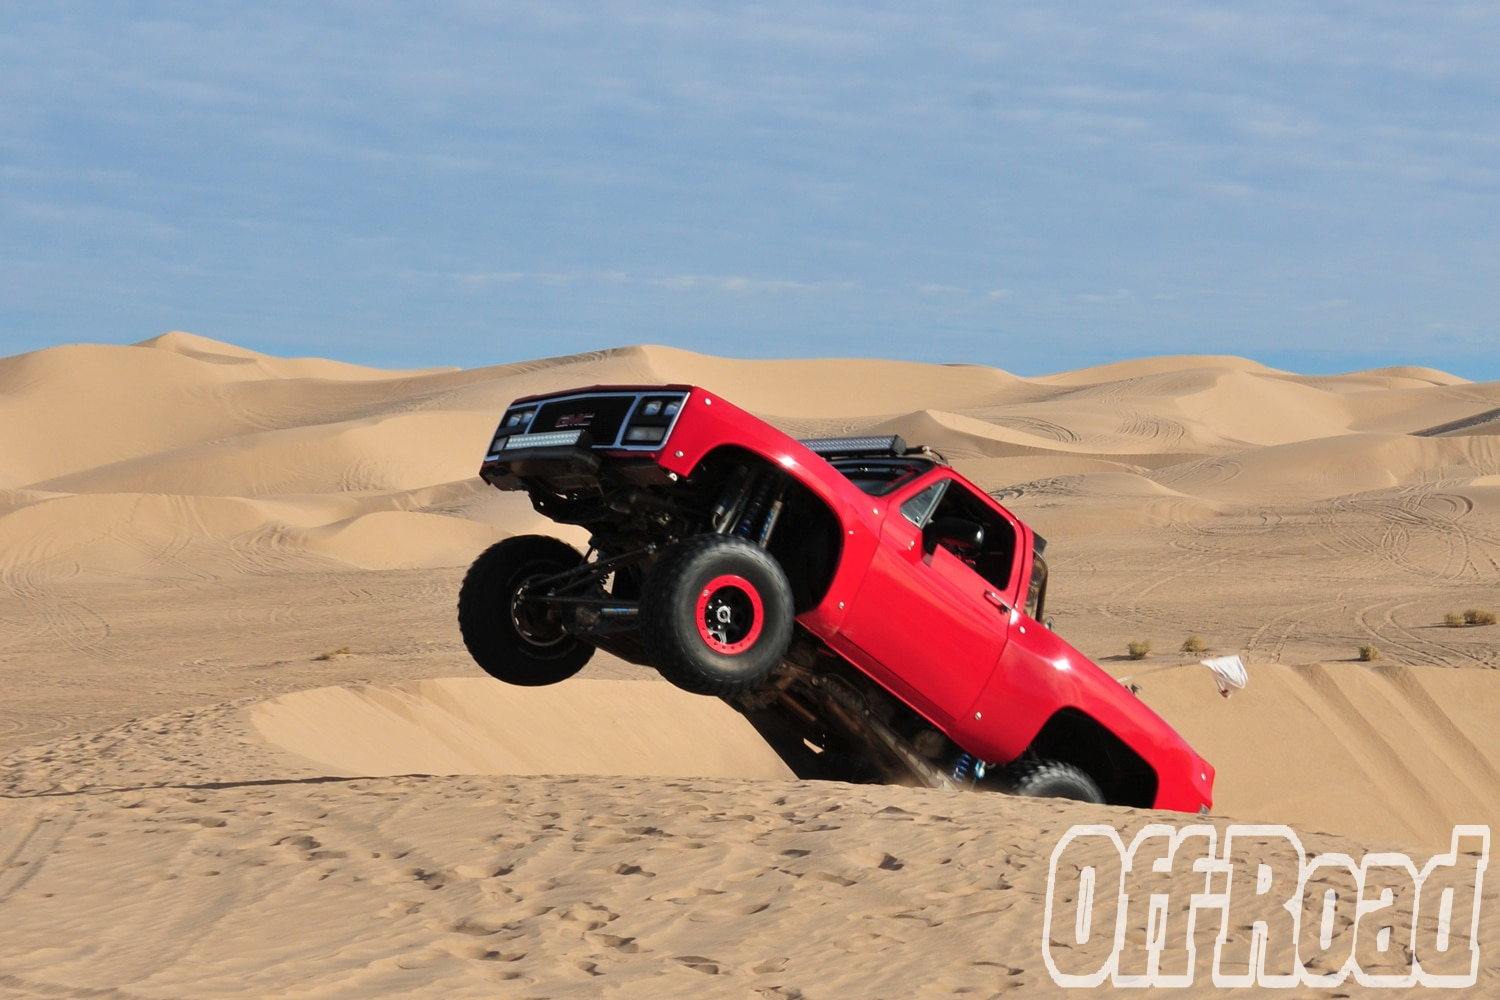 1991 GMC K5 Jimmy Glamis Off Road Magazine Cover Shoot 1